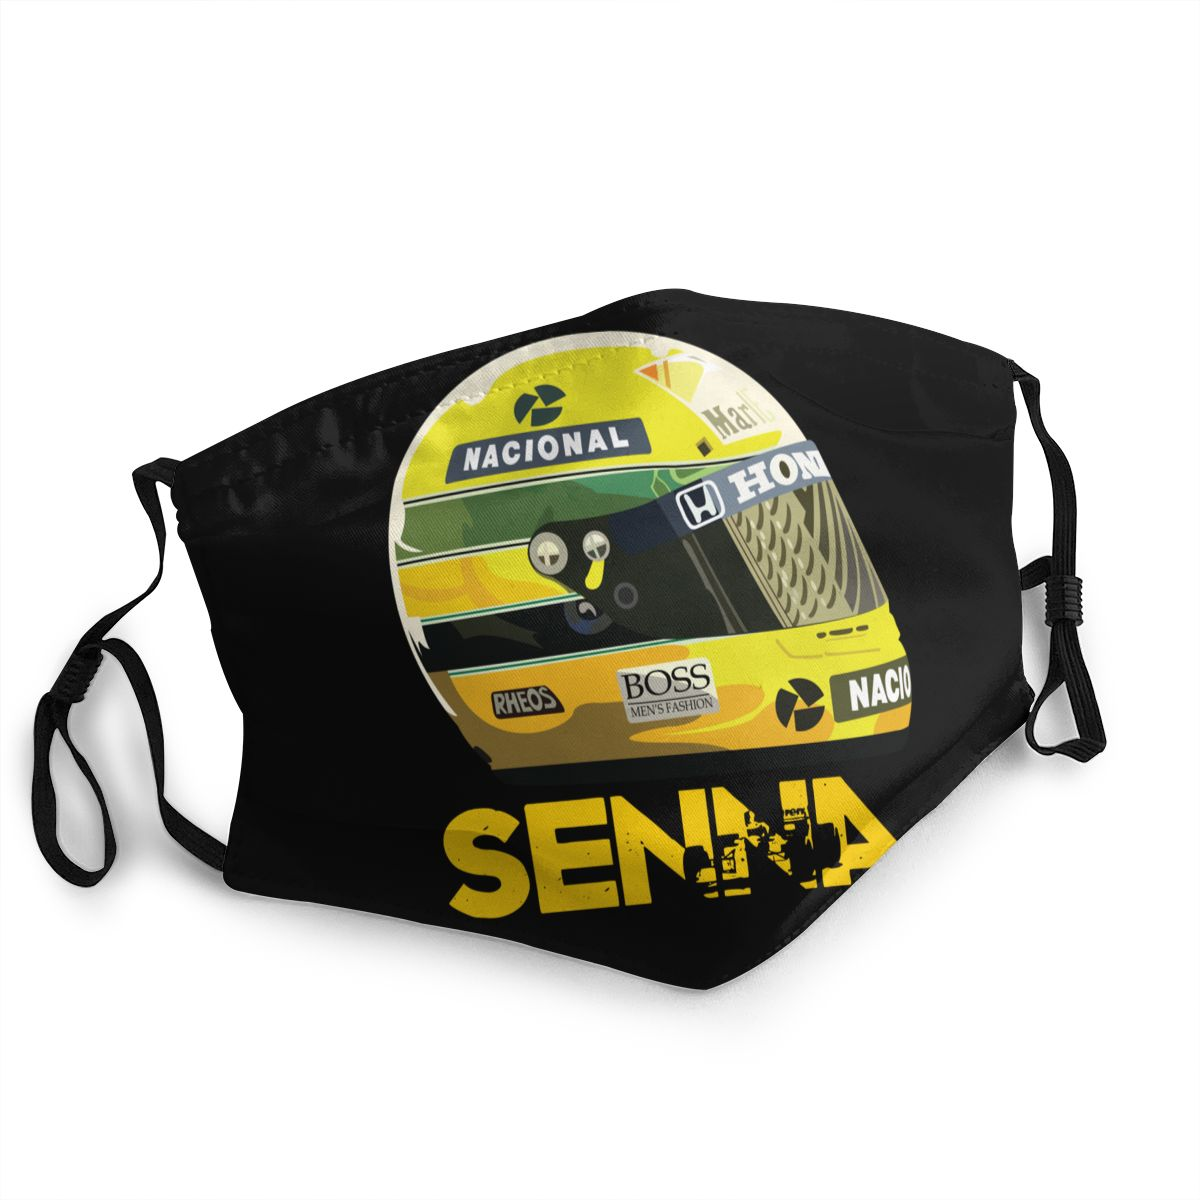 Ayrton Senna Helmet Unisex Non-Disposable Face Mask Anti Bacterial Dustproof Protection Cover Respirator